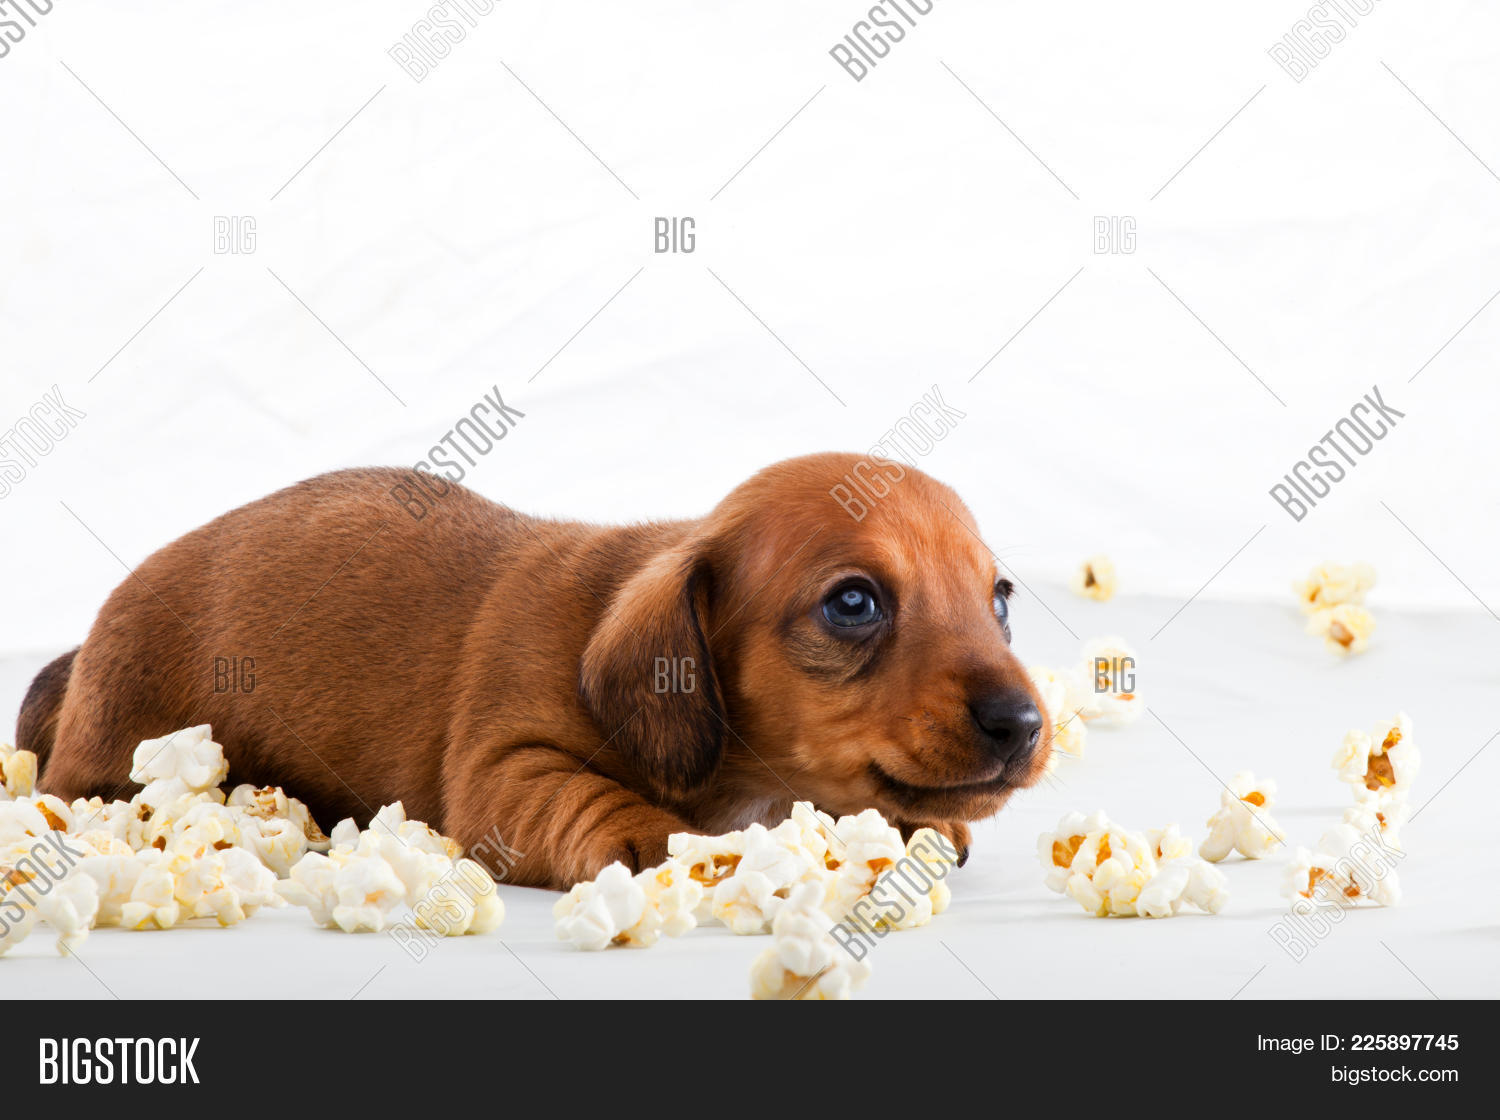 Dachshund Dog Powerpoint Theme Powerpoint Template Dachshund Dog